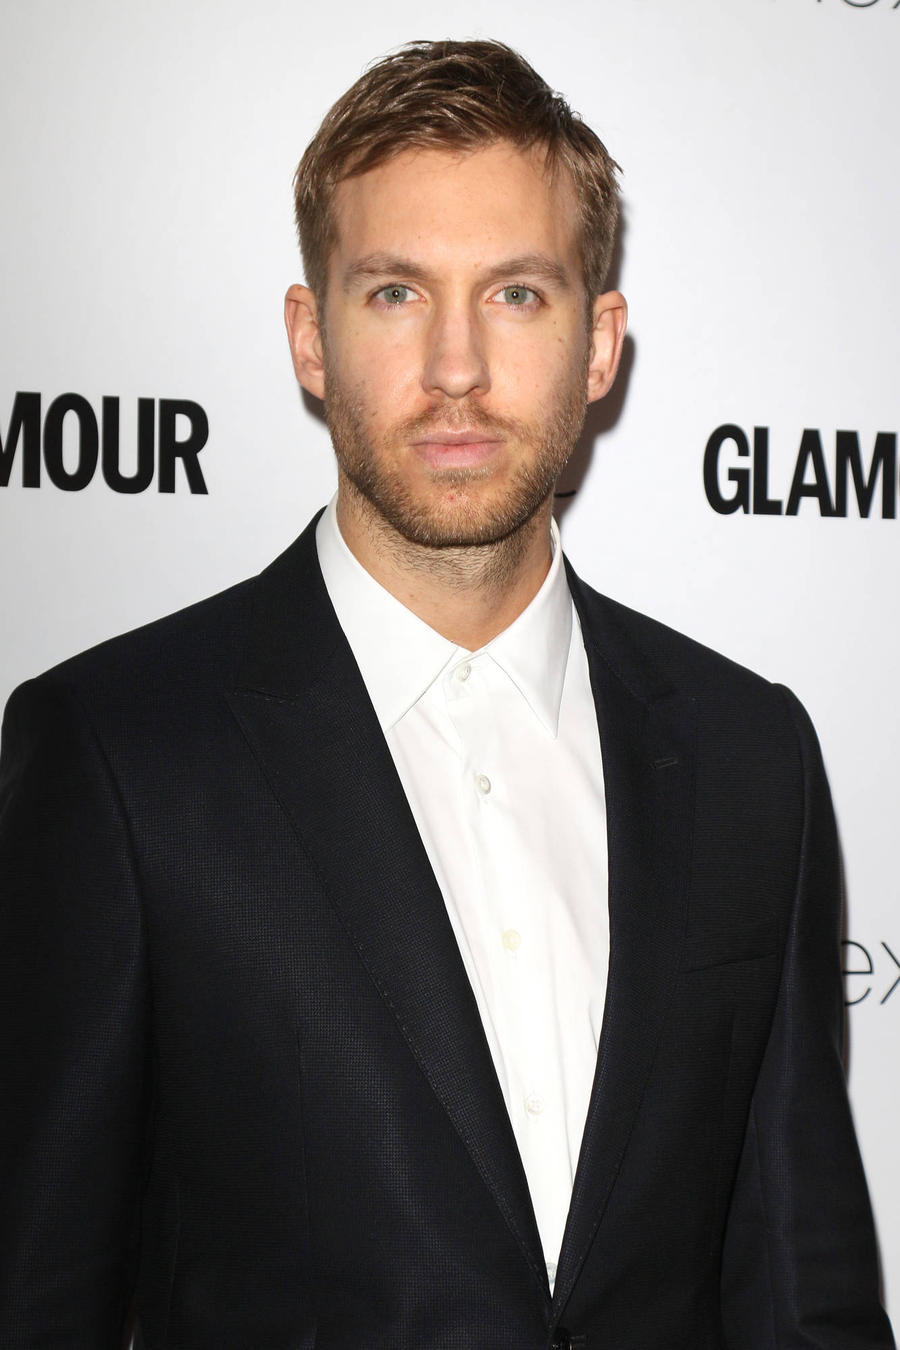 Calvin Harris Led Wireless Lineup Leaves Fans Underwhelmed